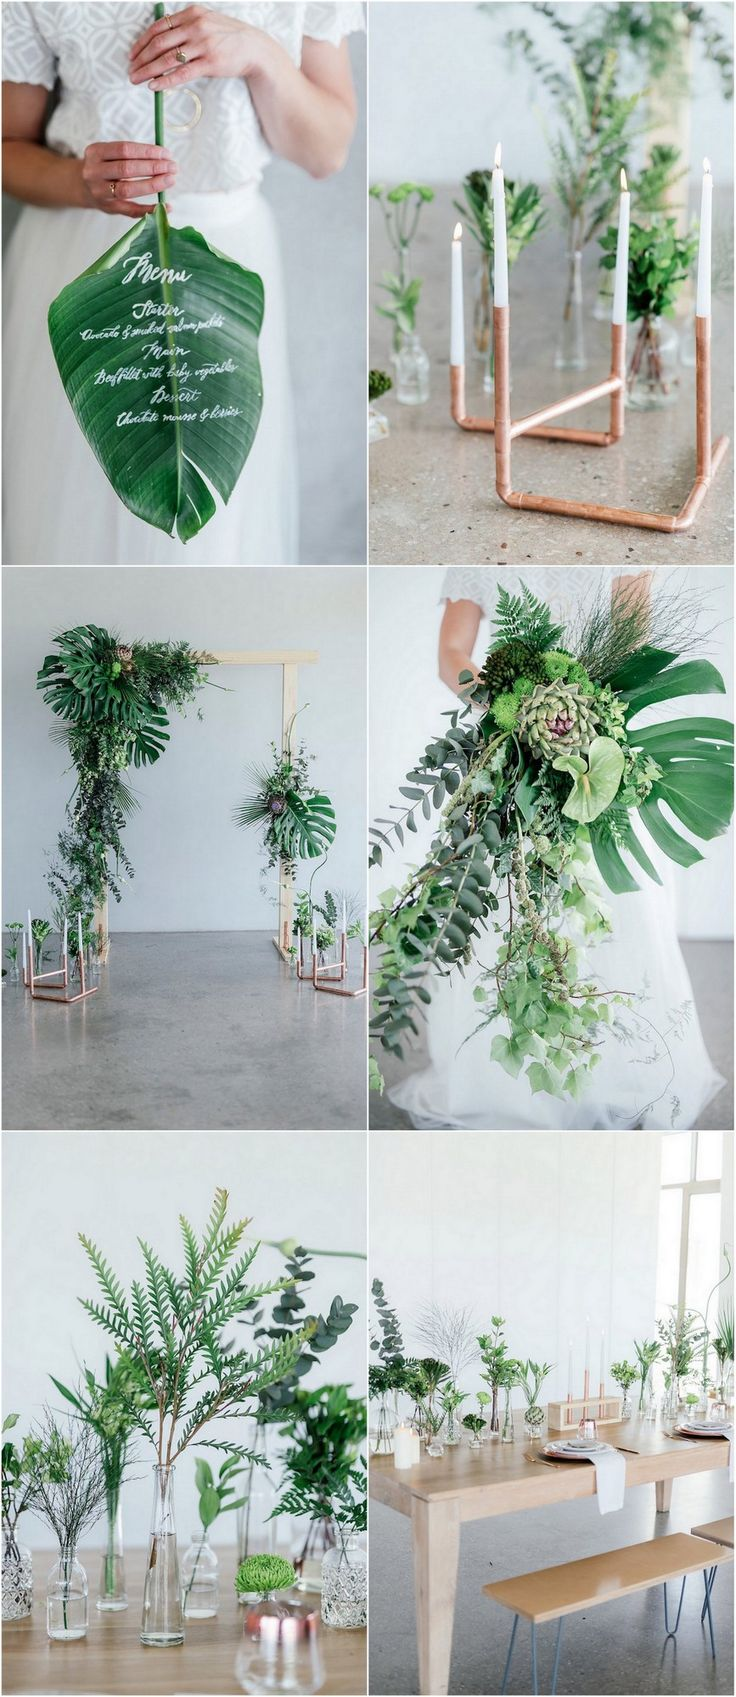 369 best images about wedding table decor on pinterest for Wedding greenery ideas